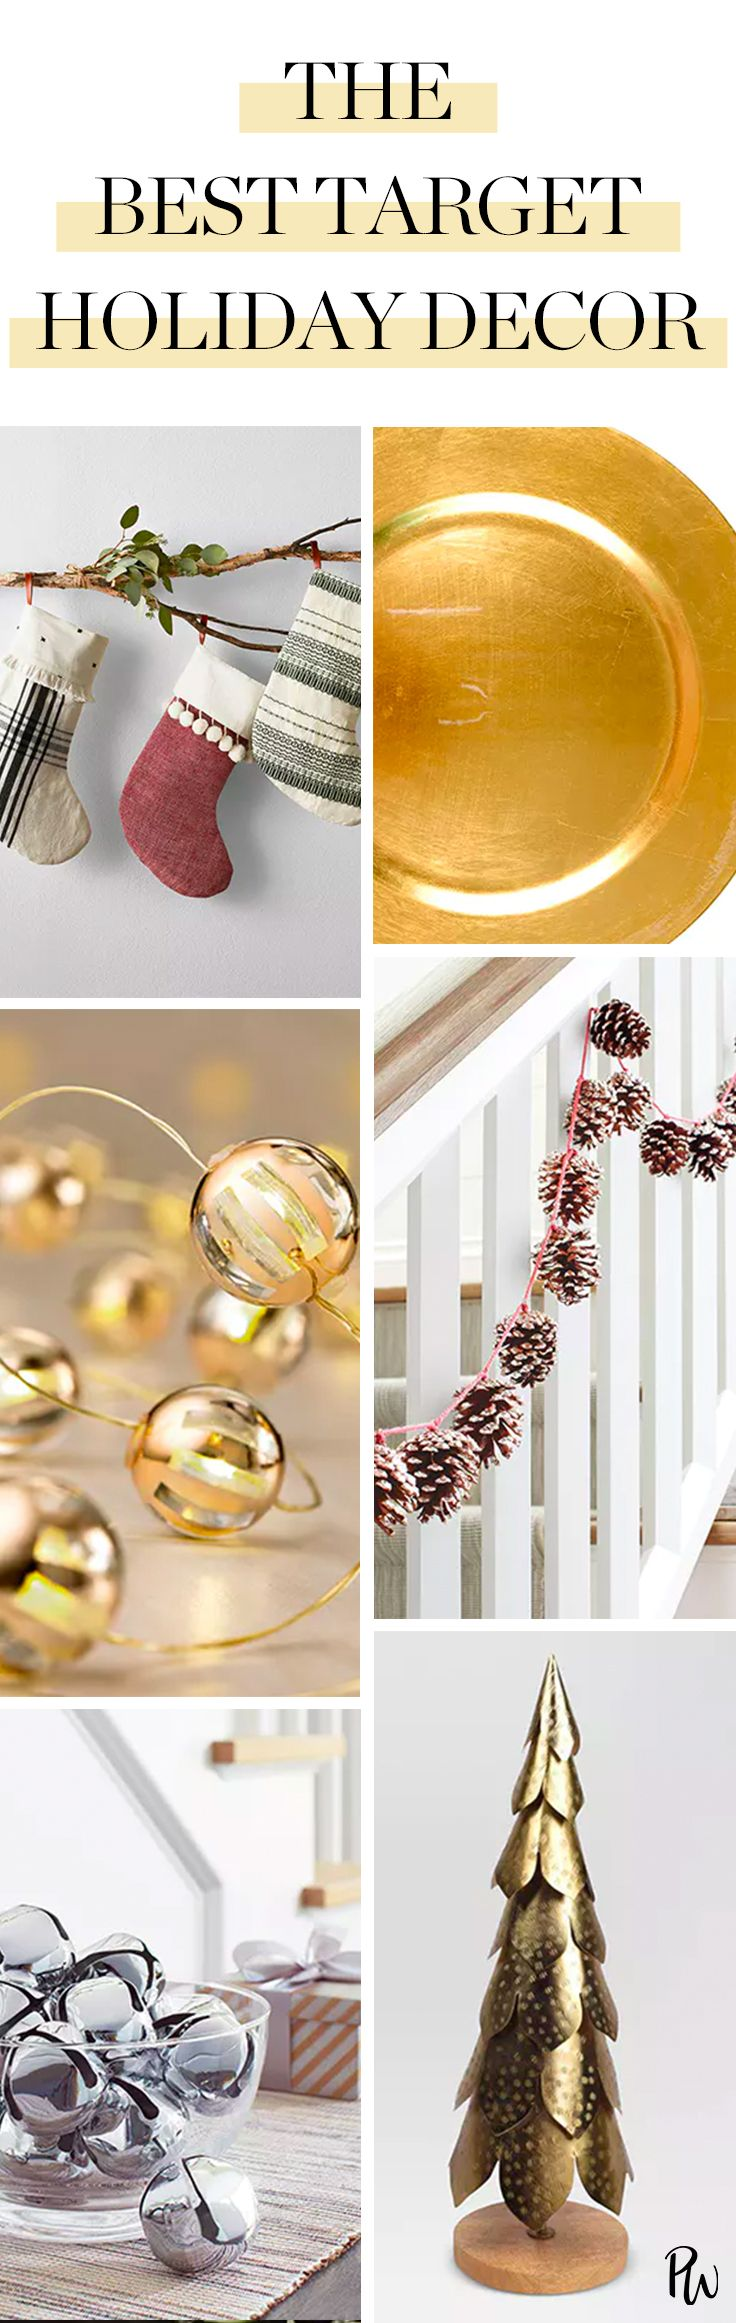 Naked greenery search is up 379 percent on Pinterest —meaningwreaths,tabletop decor, evenChristmas trees themselvesare losing the embellishments and letting their lush, verdant greenness do all the talking. #greenery #holidaydecor #holidays #nakedgreenery #hangingdecor #hanginggreenery #greenery #holidaywreaths #homedecor